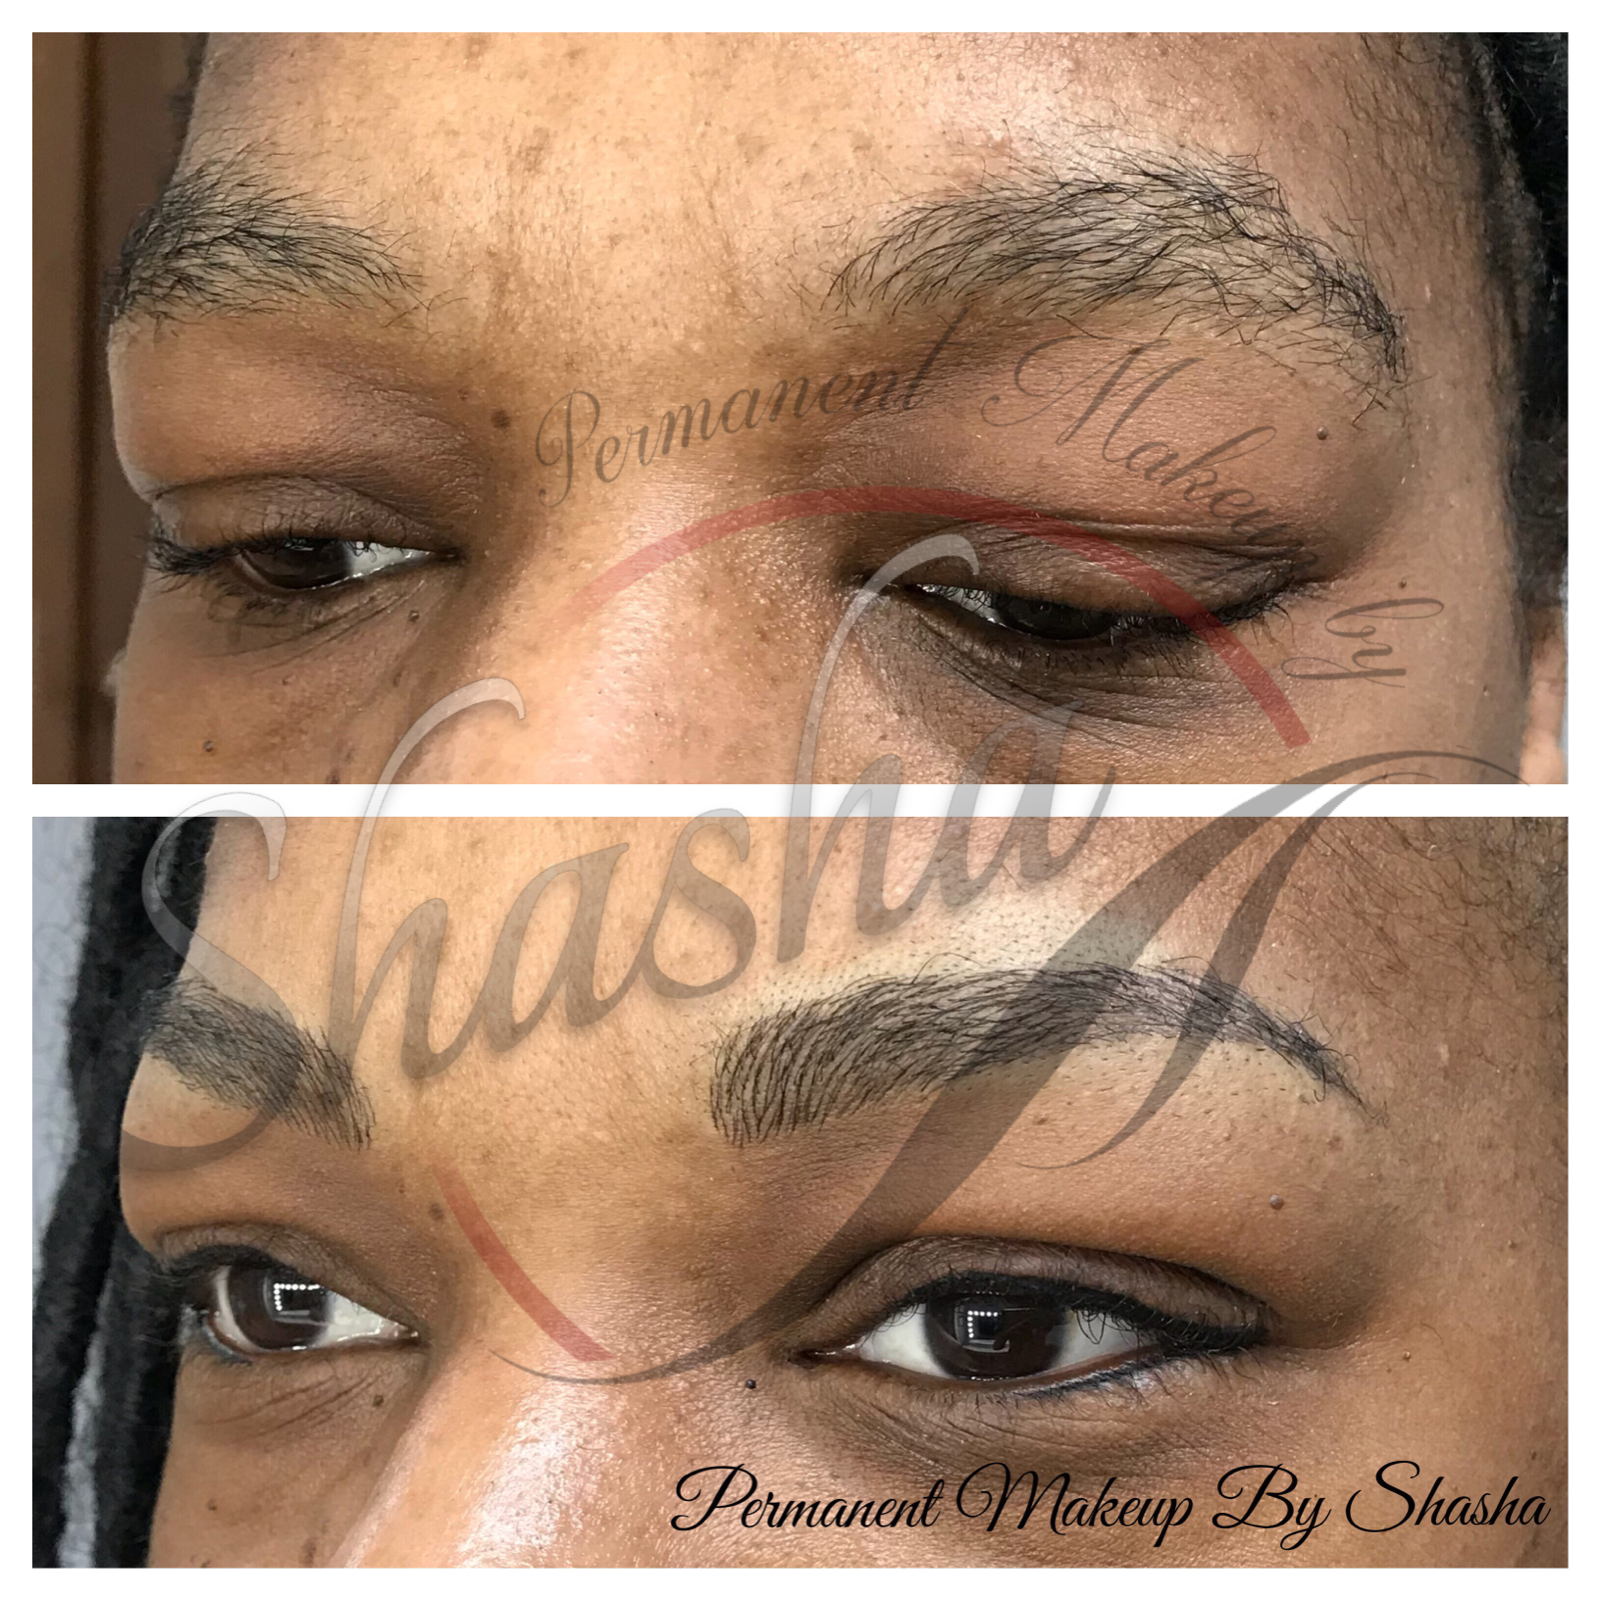 Microblading Brows and Eyeliner